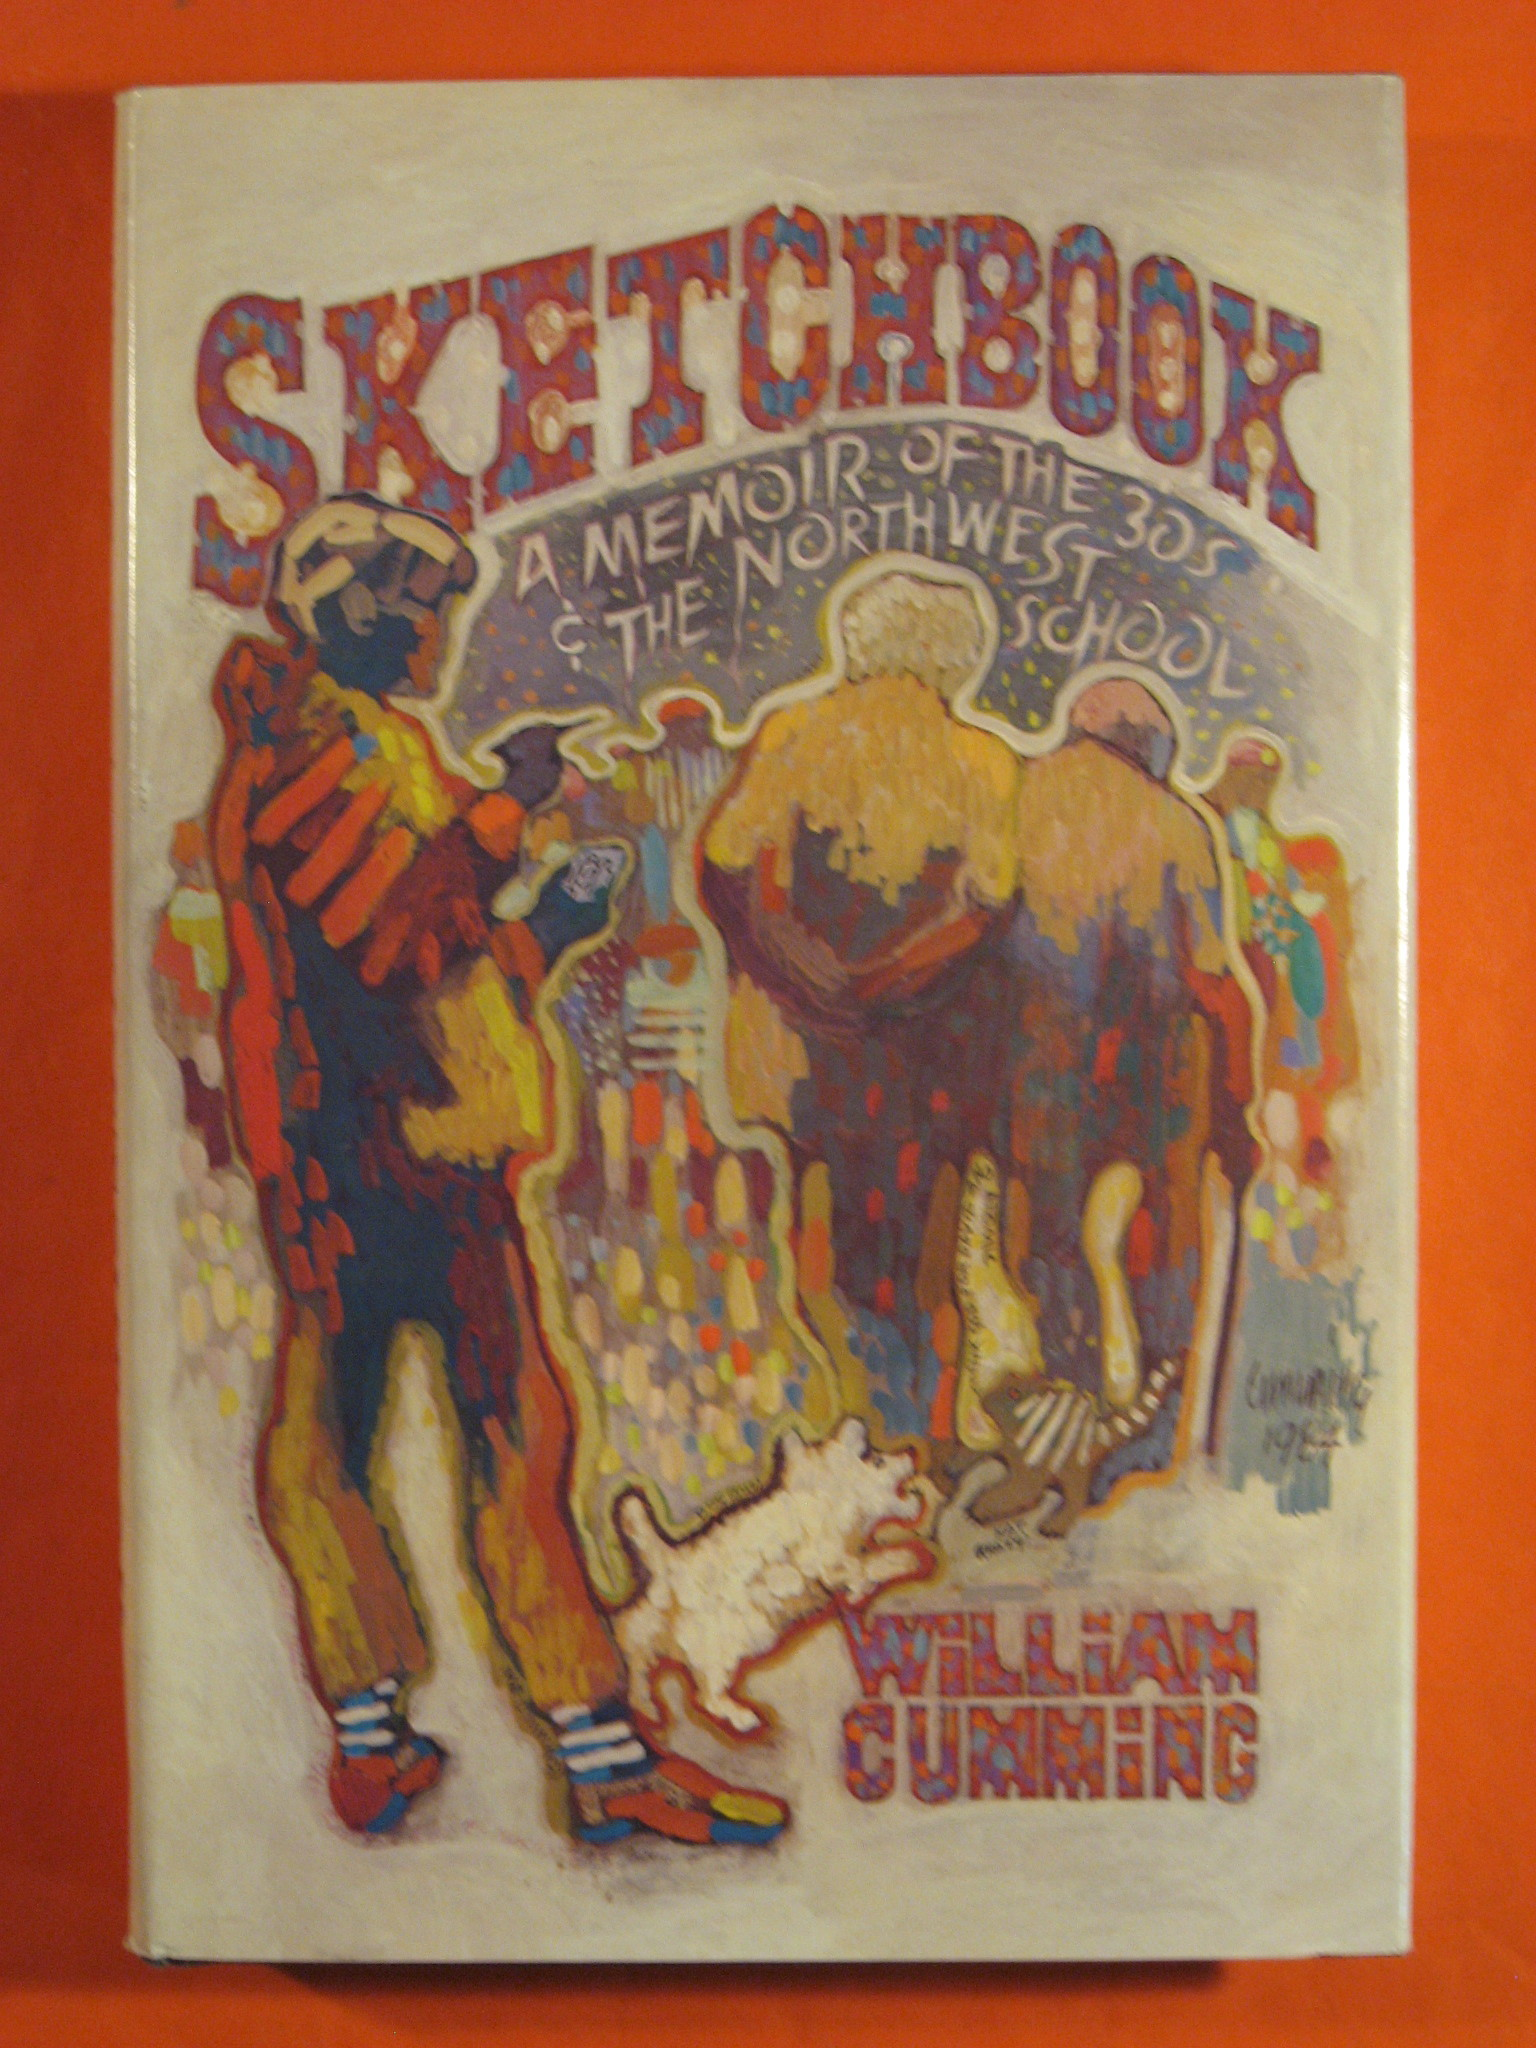 Sketchbook: A Memoir of the 1930s and the Northwest School, Cumming, William